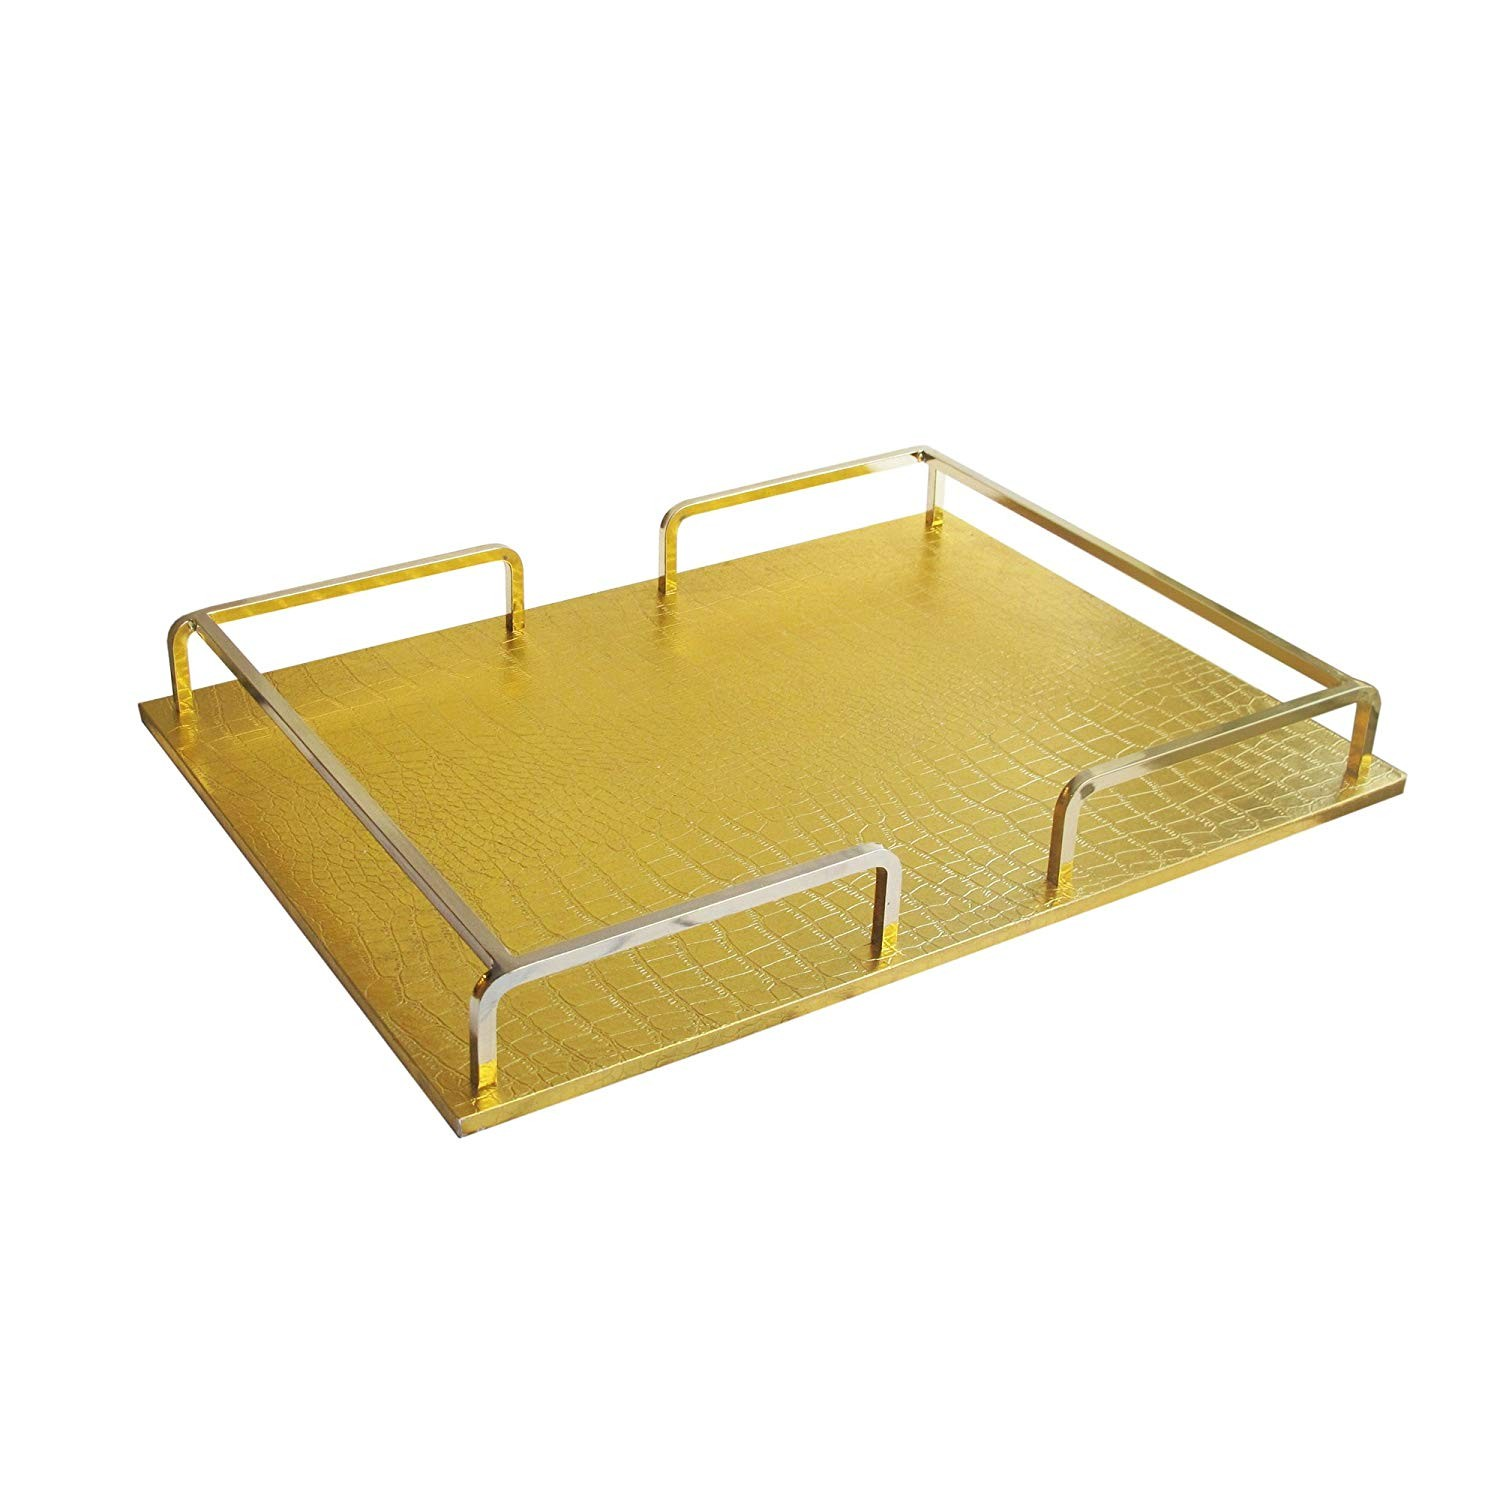 American Atelier 1330454 Croc Rail Tray, Gold/Gold, Rectangle